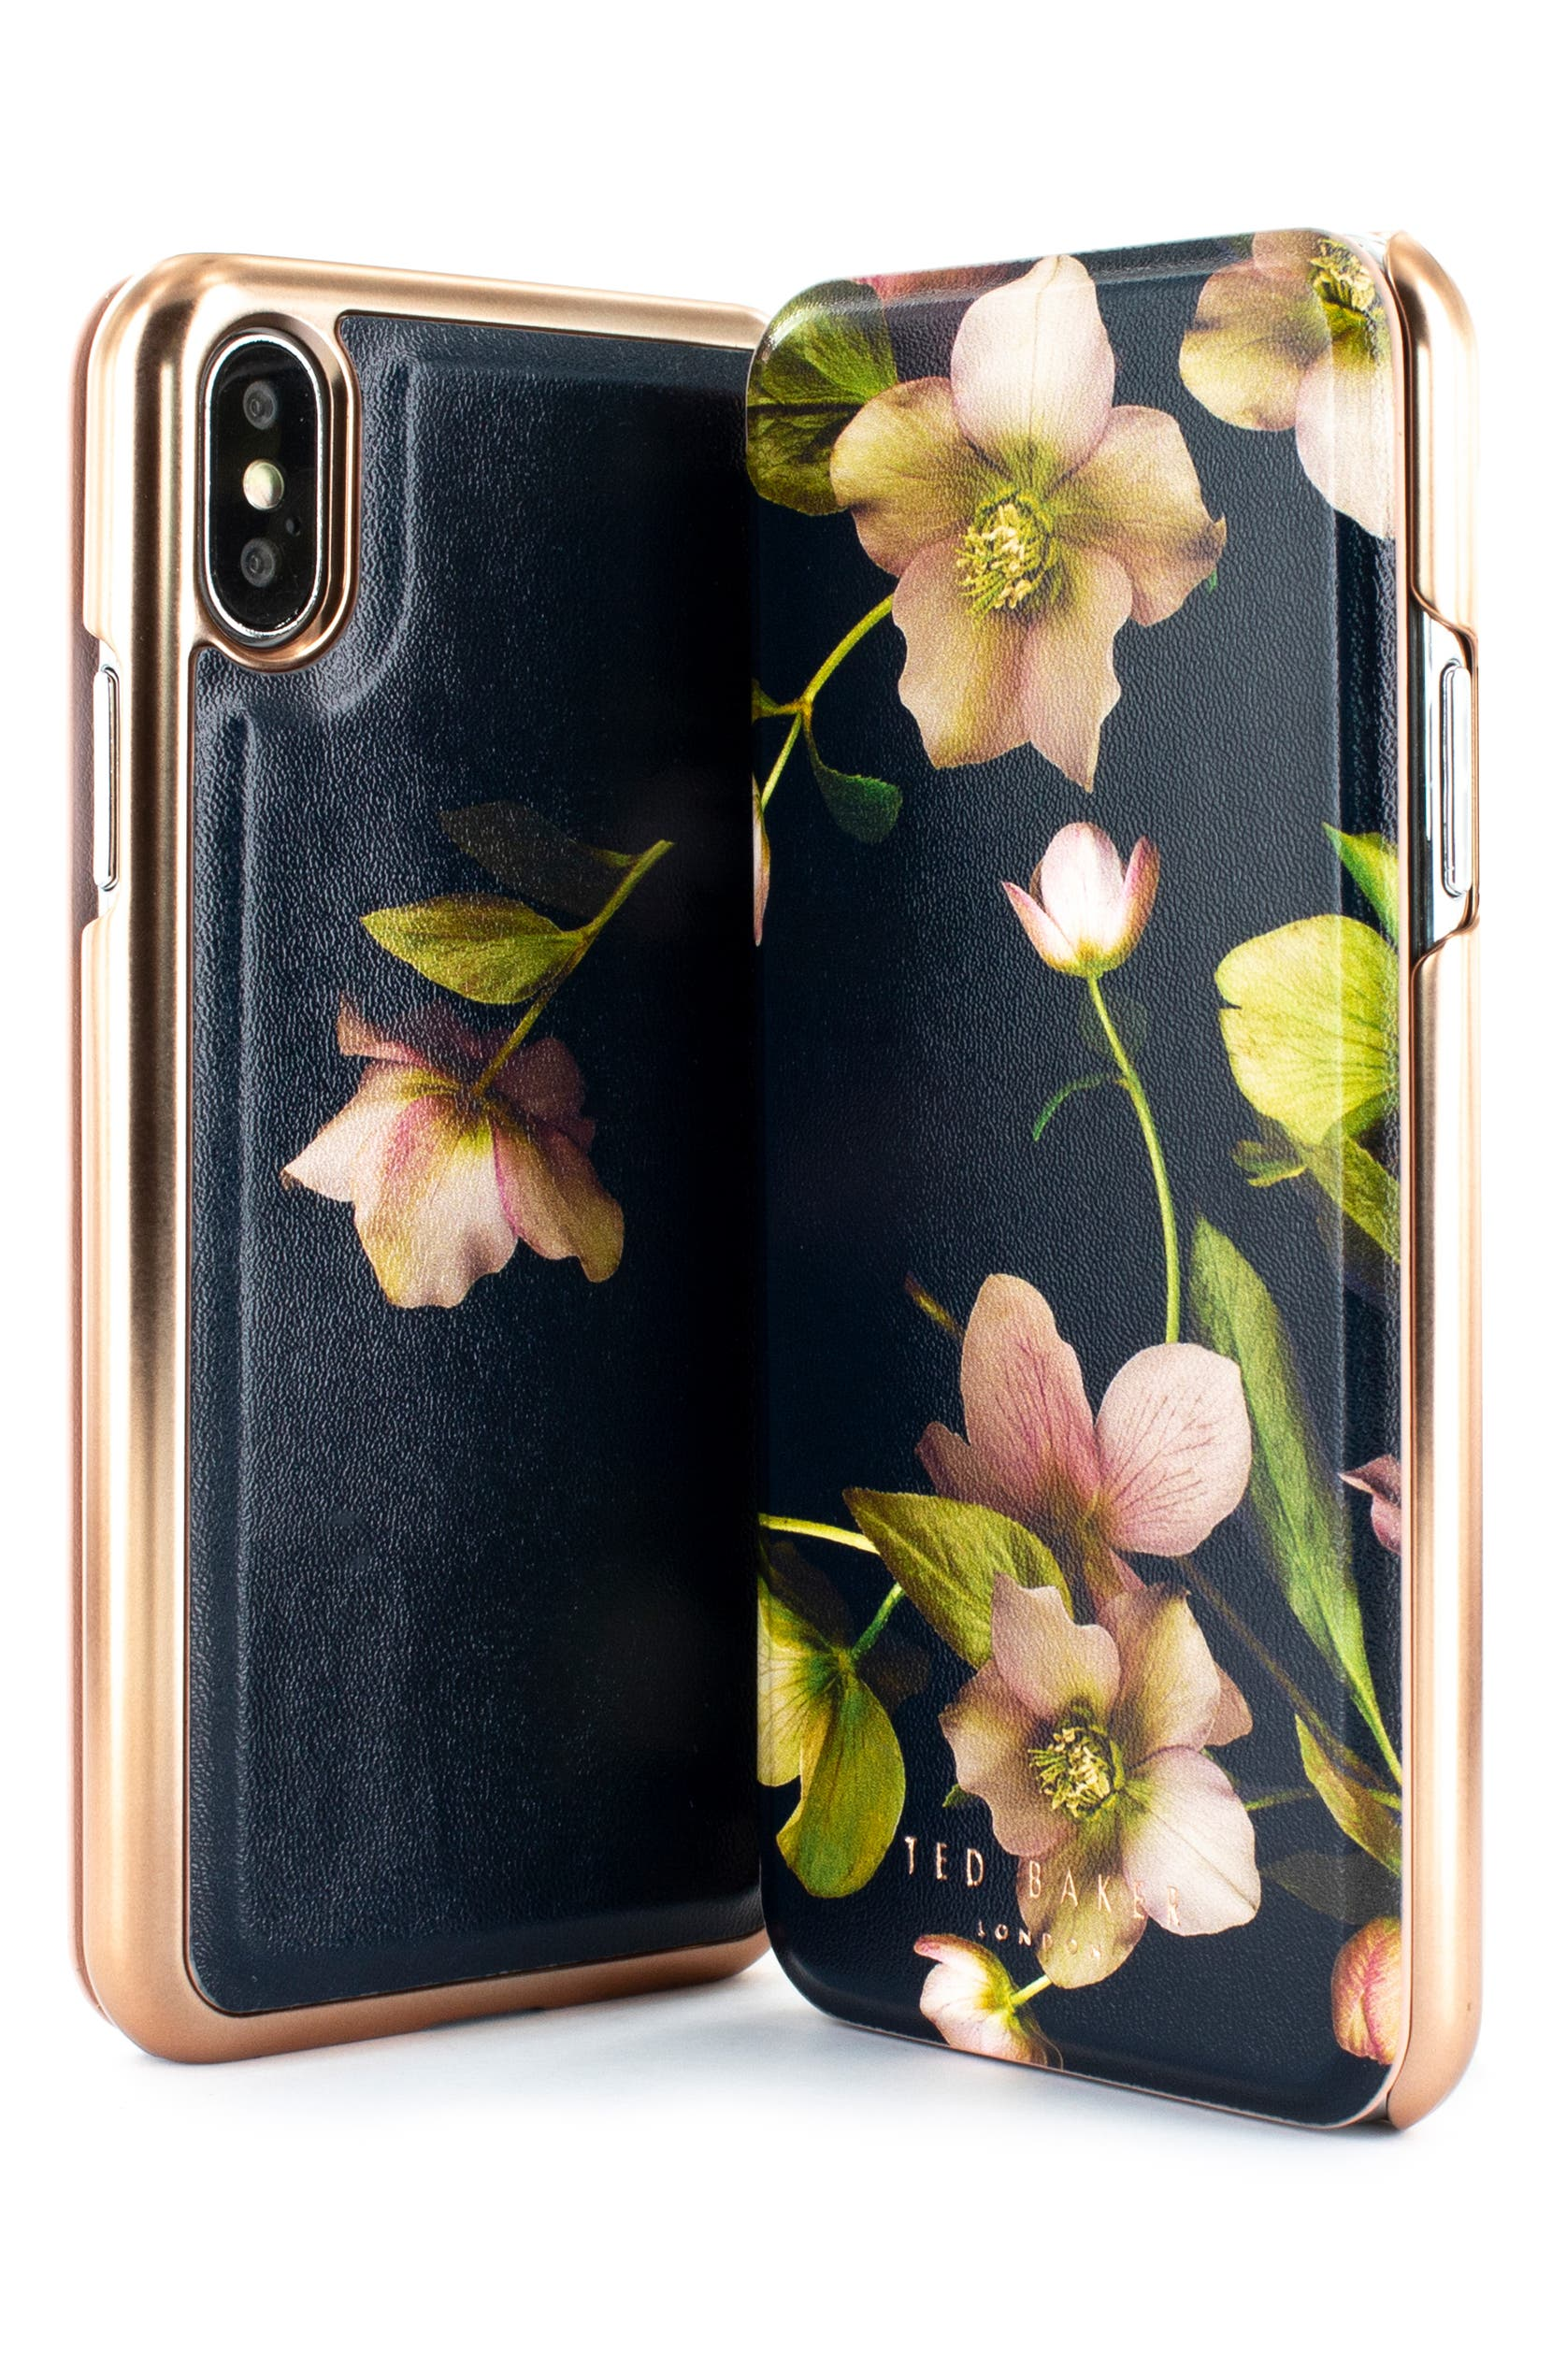 ted baker iphone xs max case